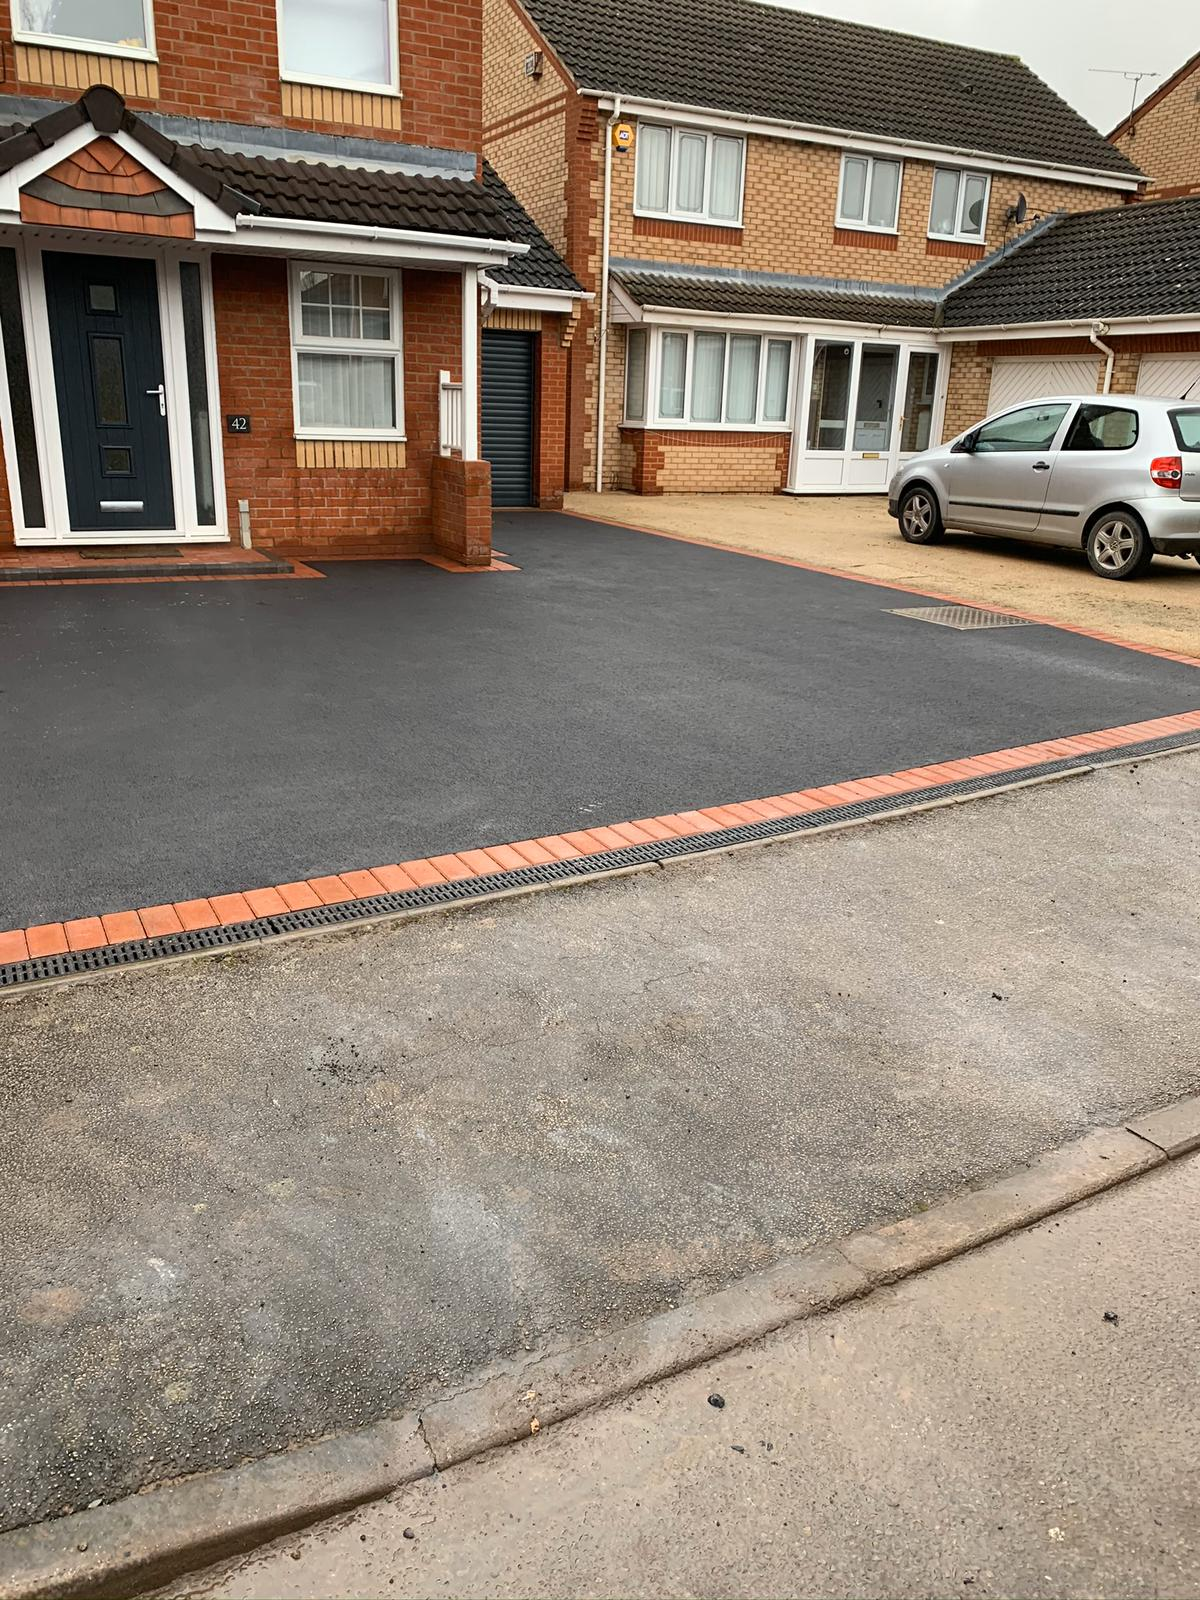 Newly laid tarmac driveway in coventry include red brick edges and dropped kerb